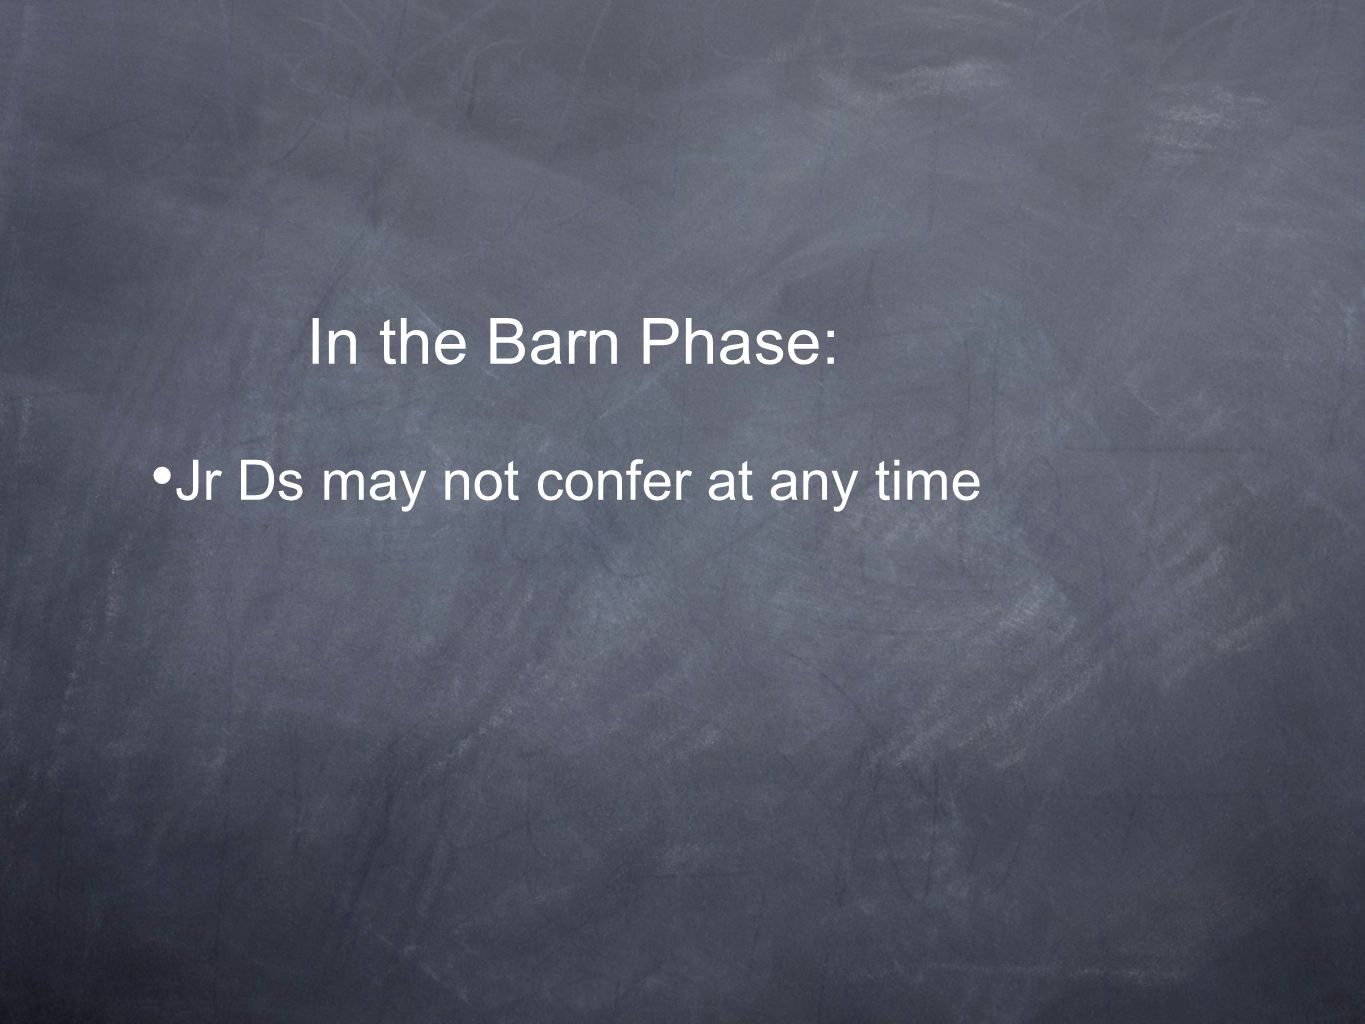 In the Barn Phase: Jr Ds may not confer at any time